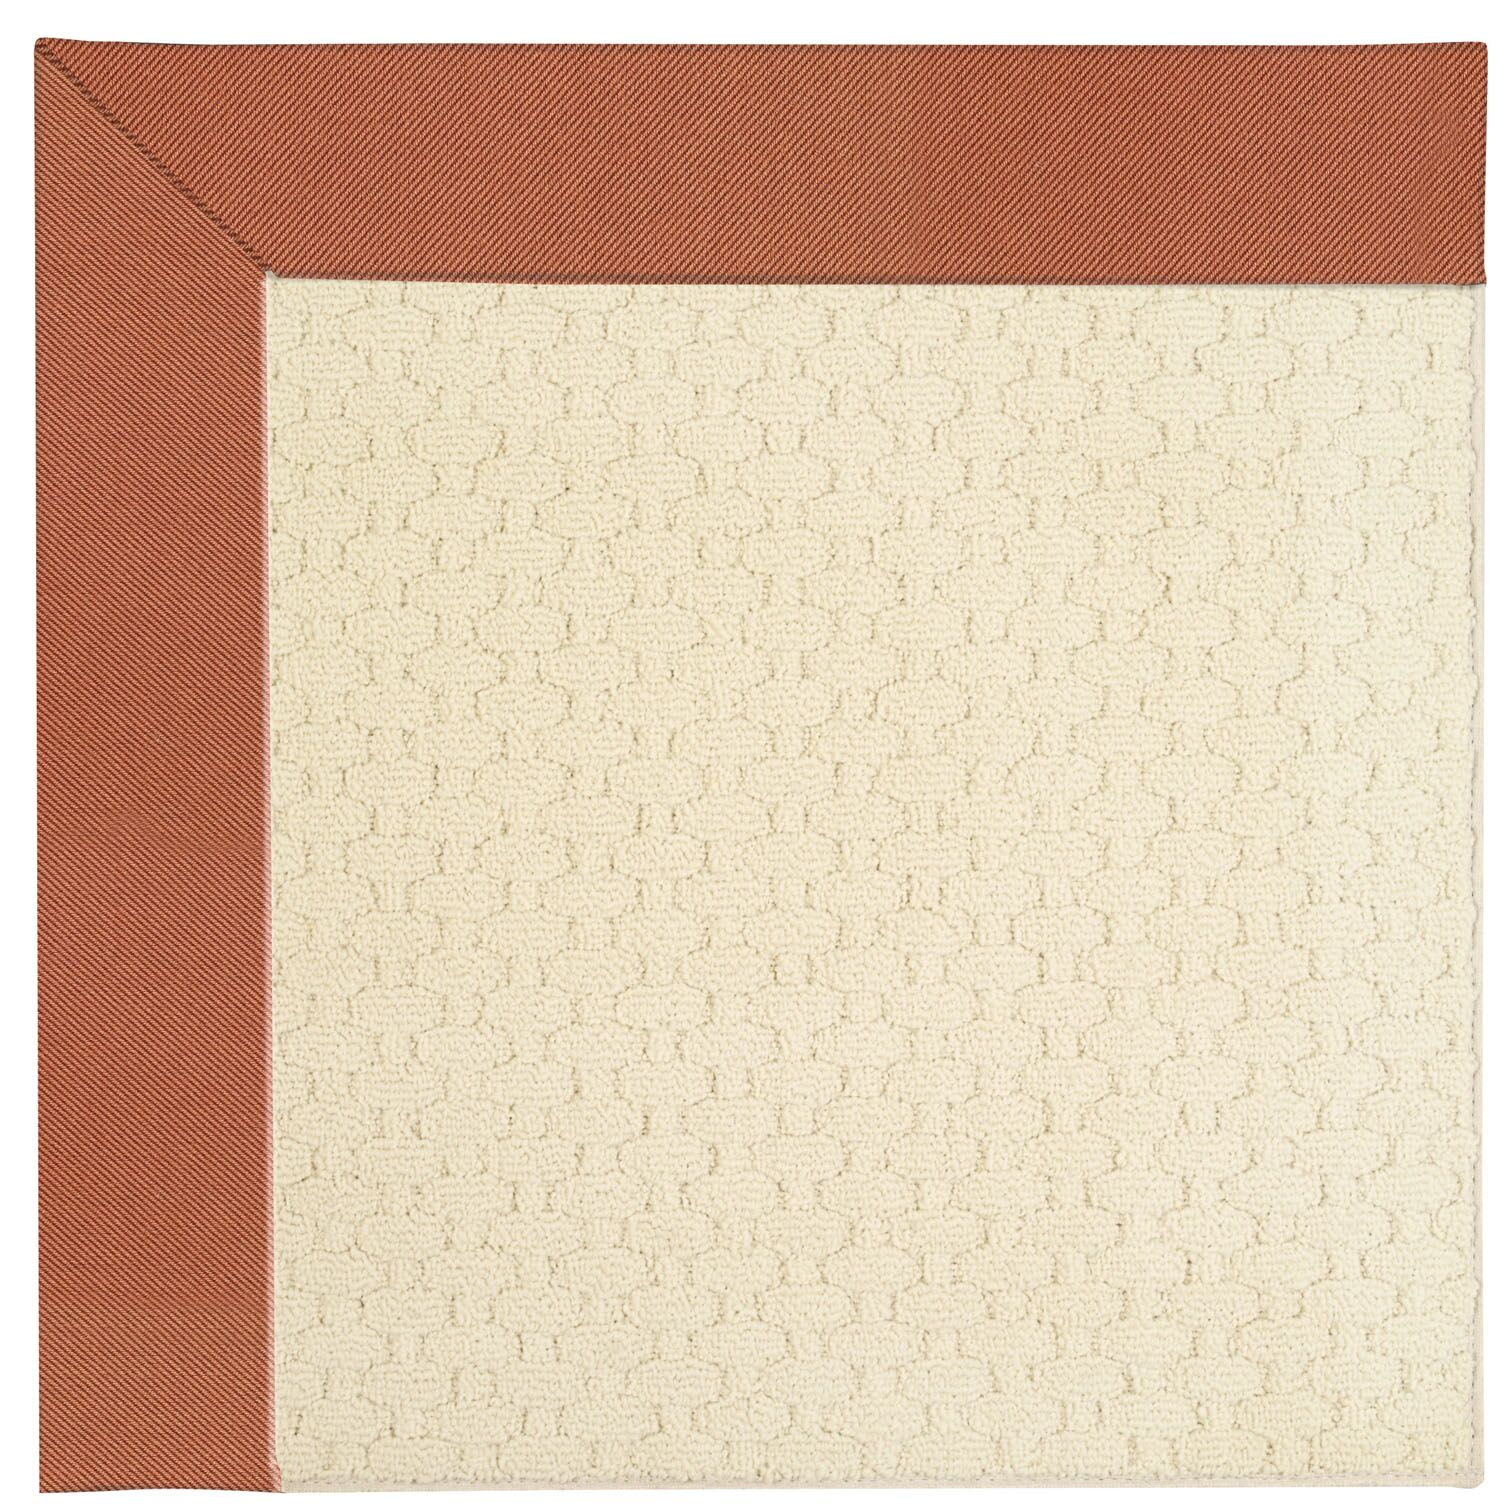 Lisle Off White Indoor/Outdoor Area Rug Rug Size: Square 12'